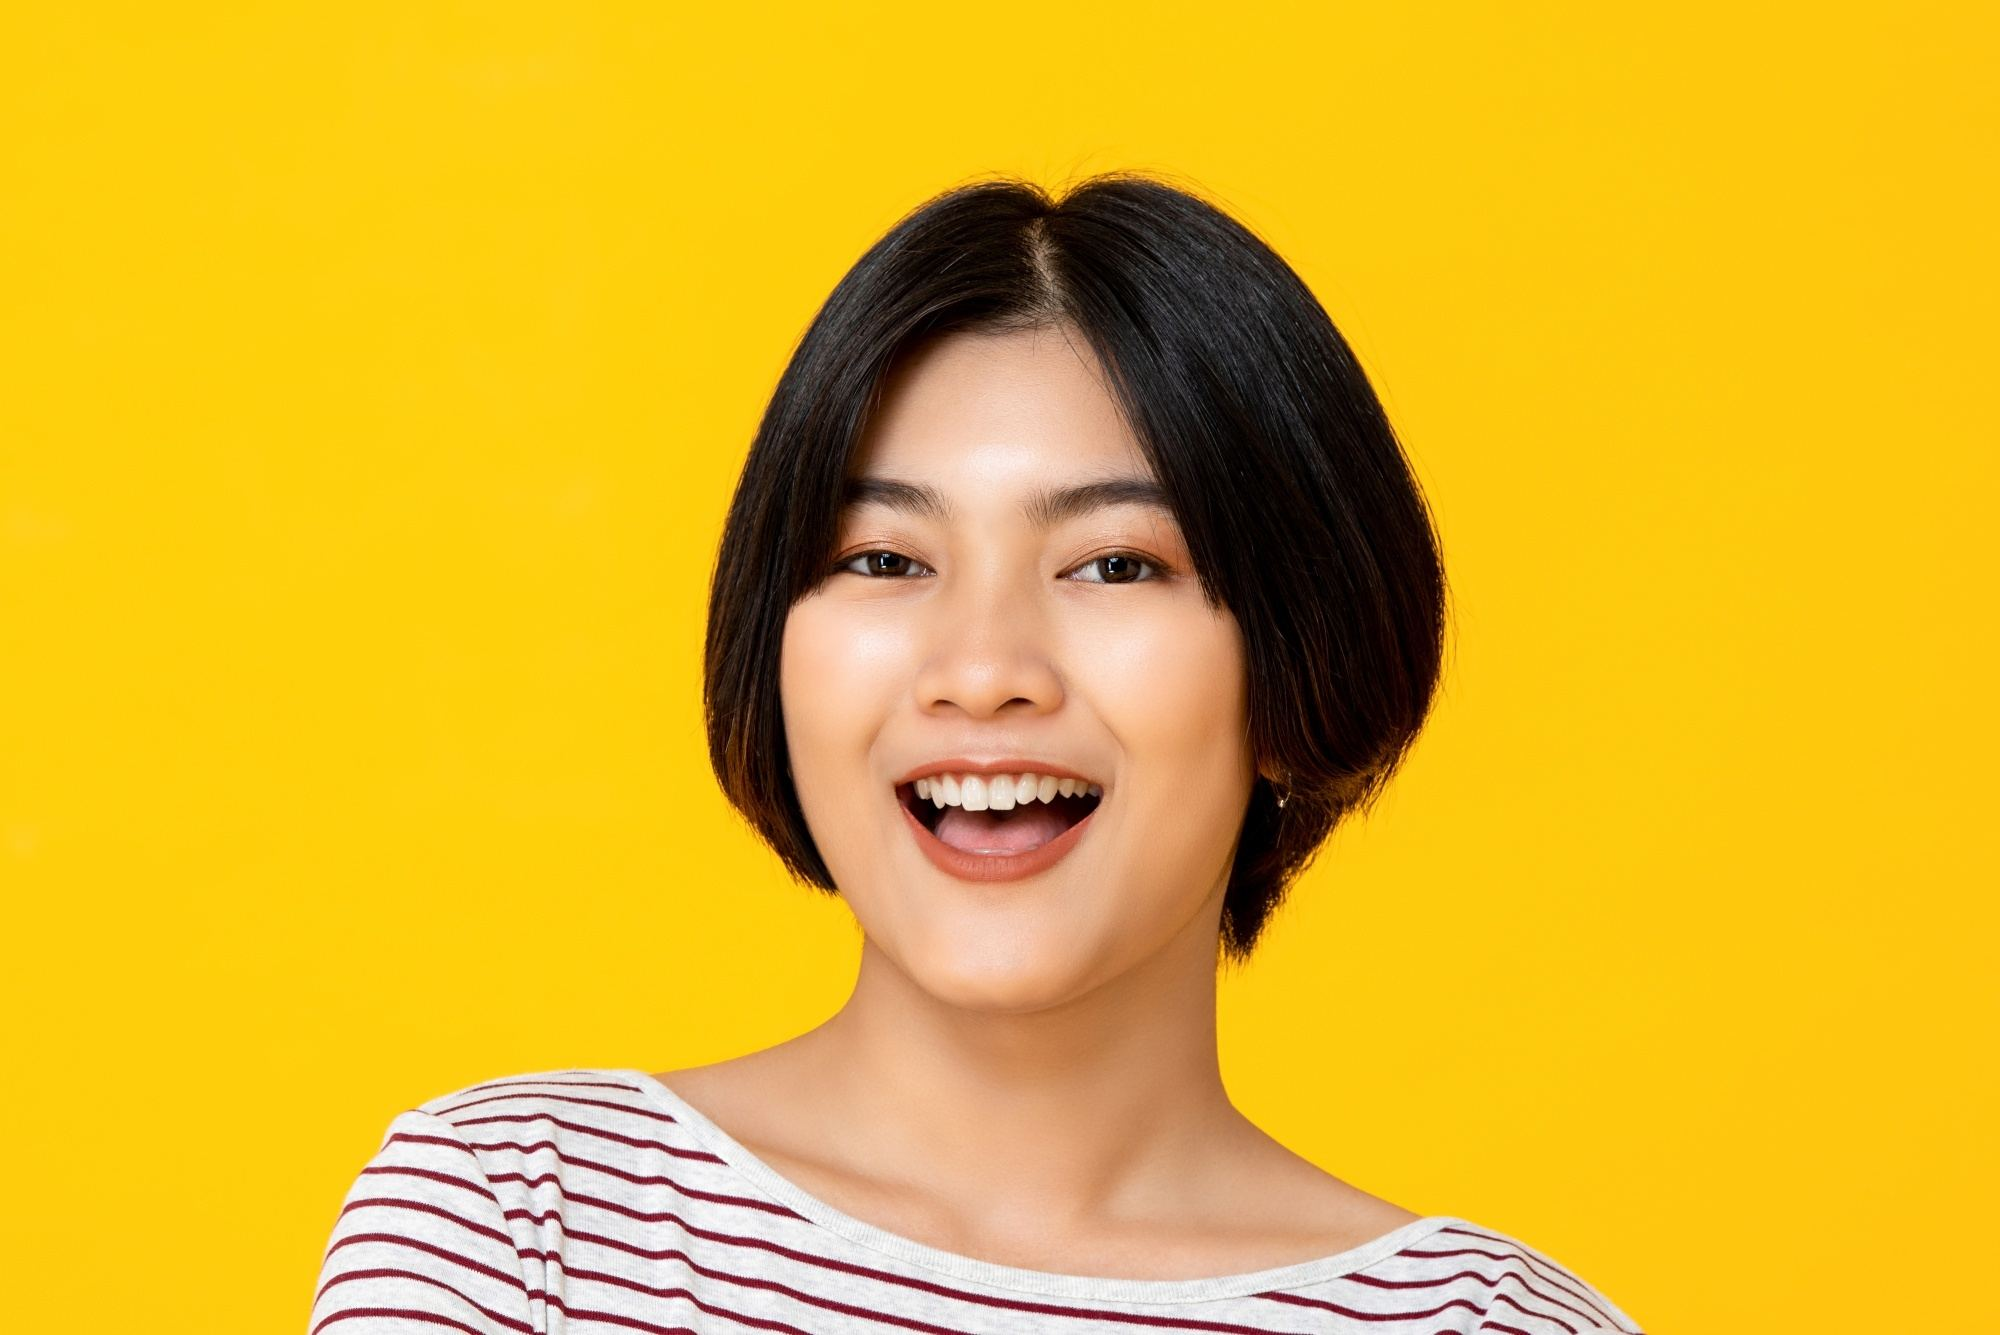 Apple cut hair: a woman smiling with her tapered apple cut